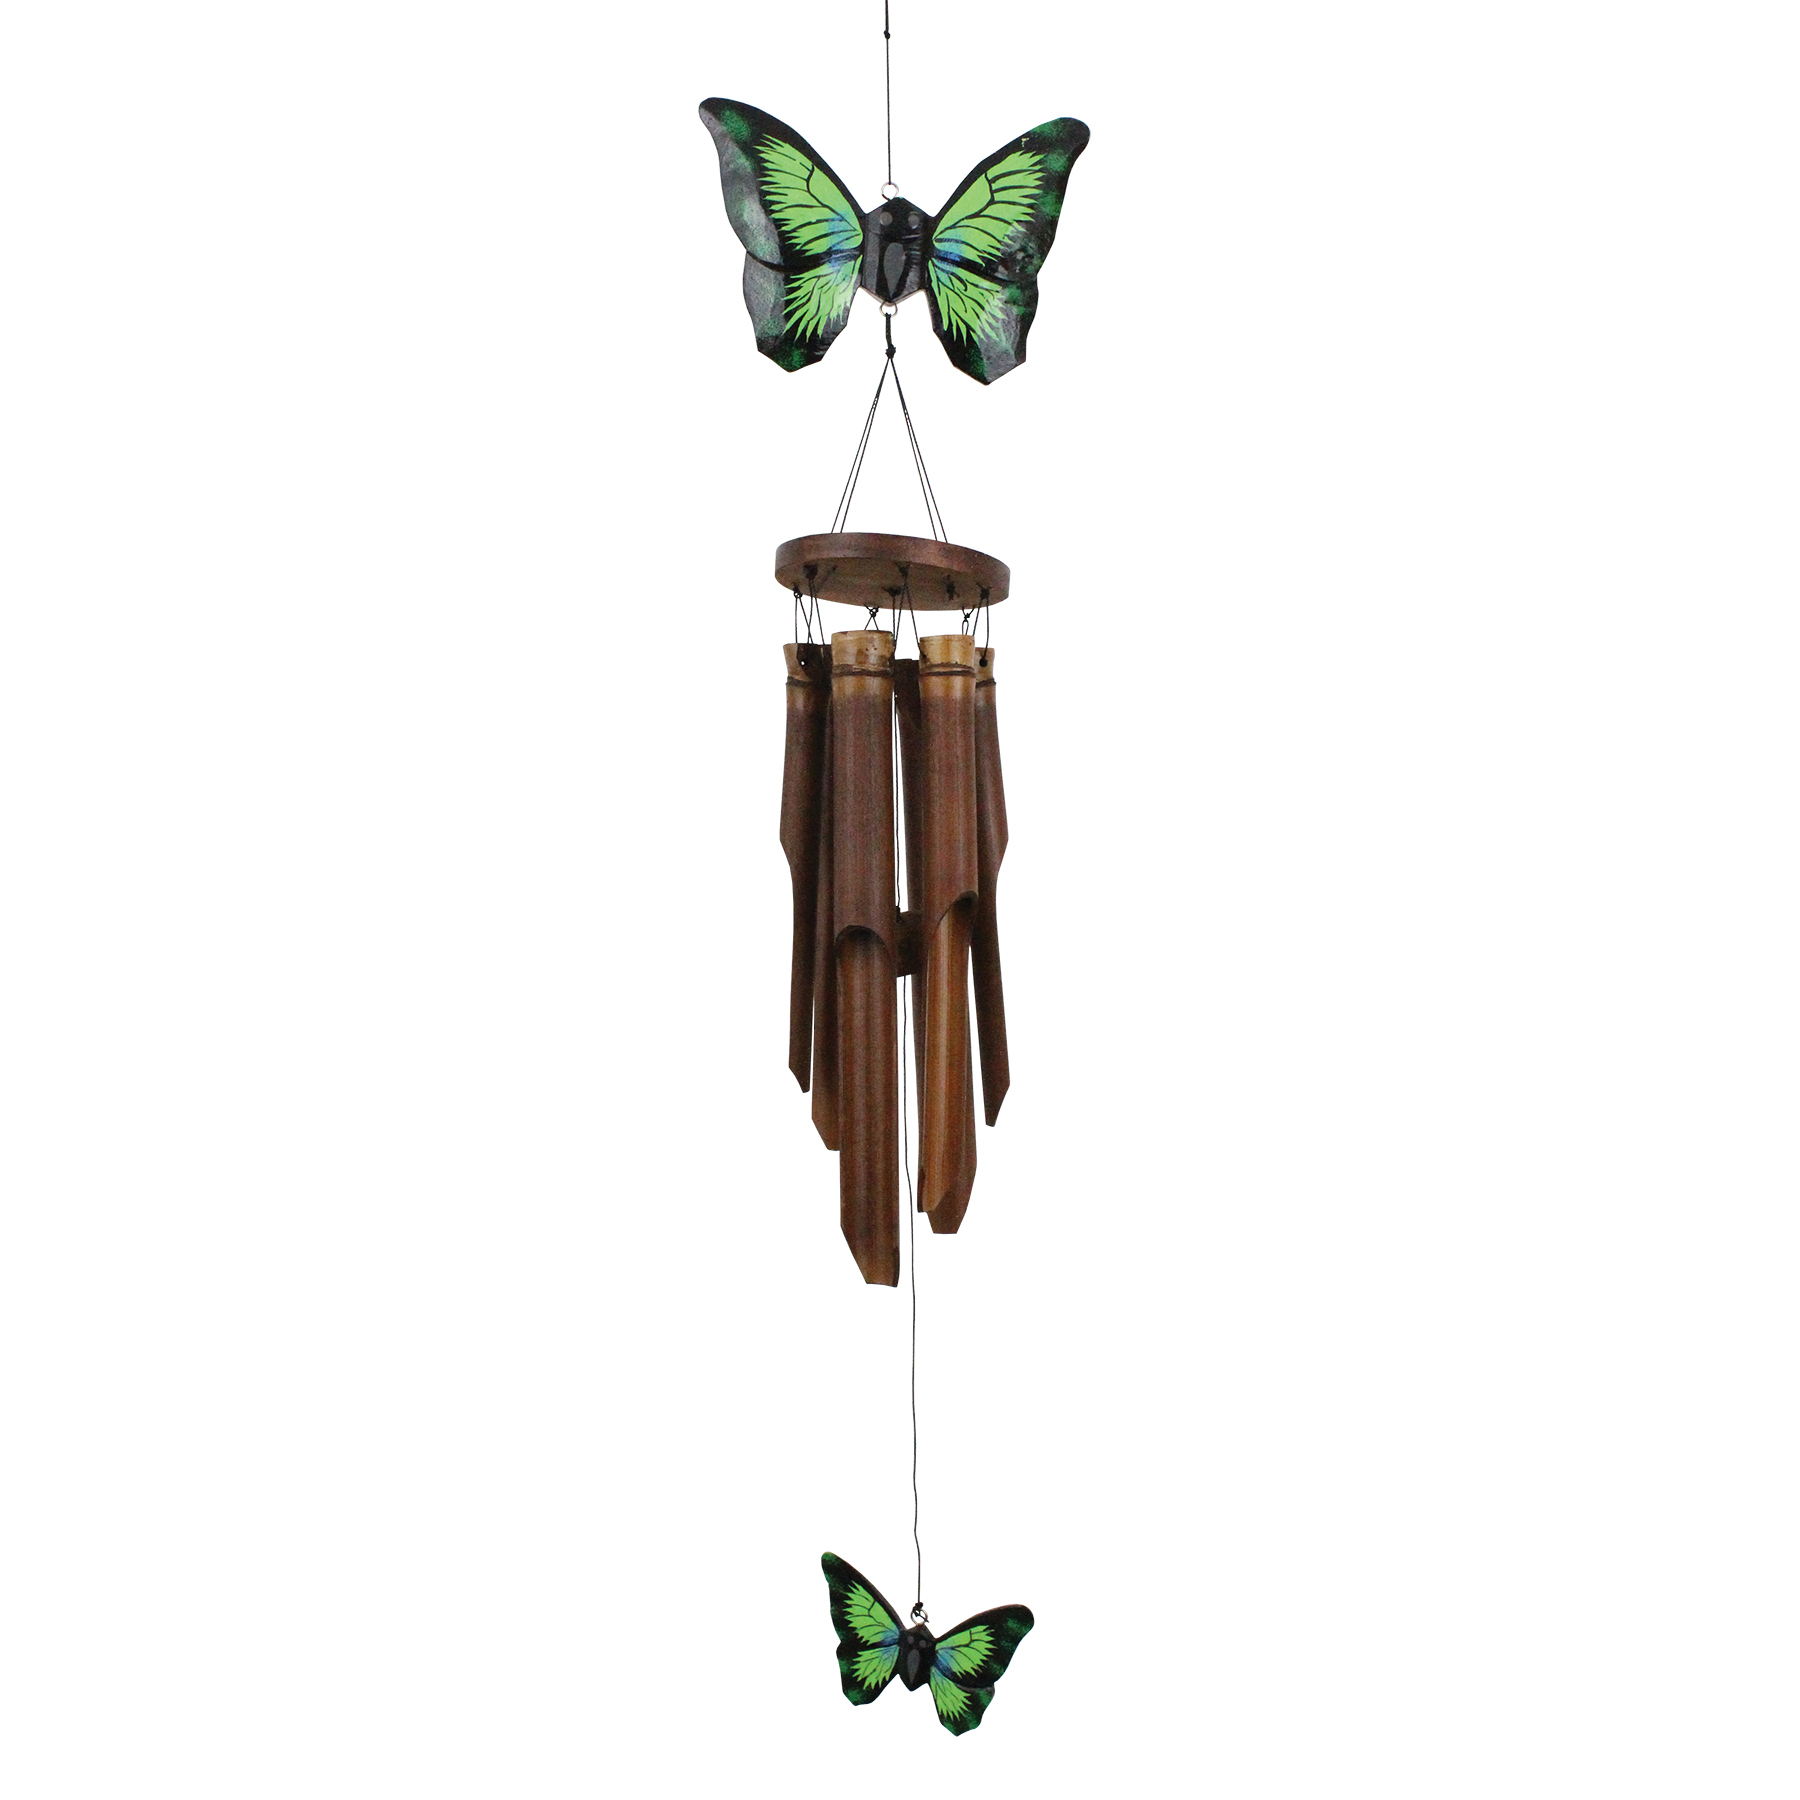 186 - Green Butterfly Bamboo Wind Chime